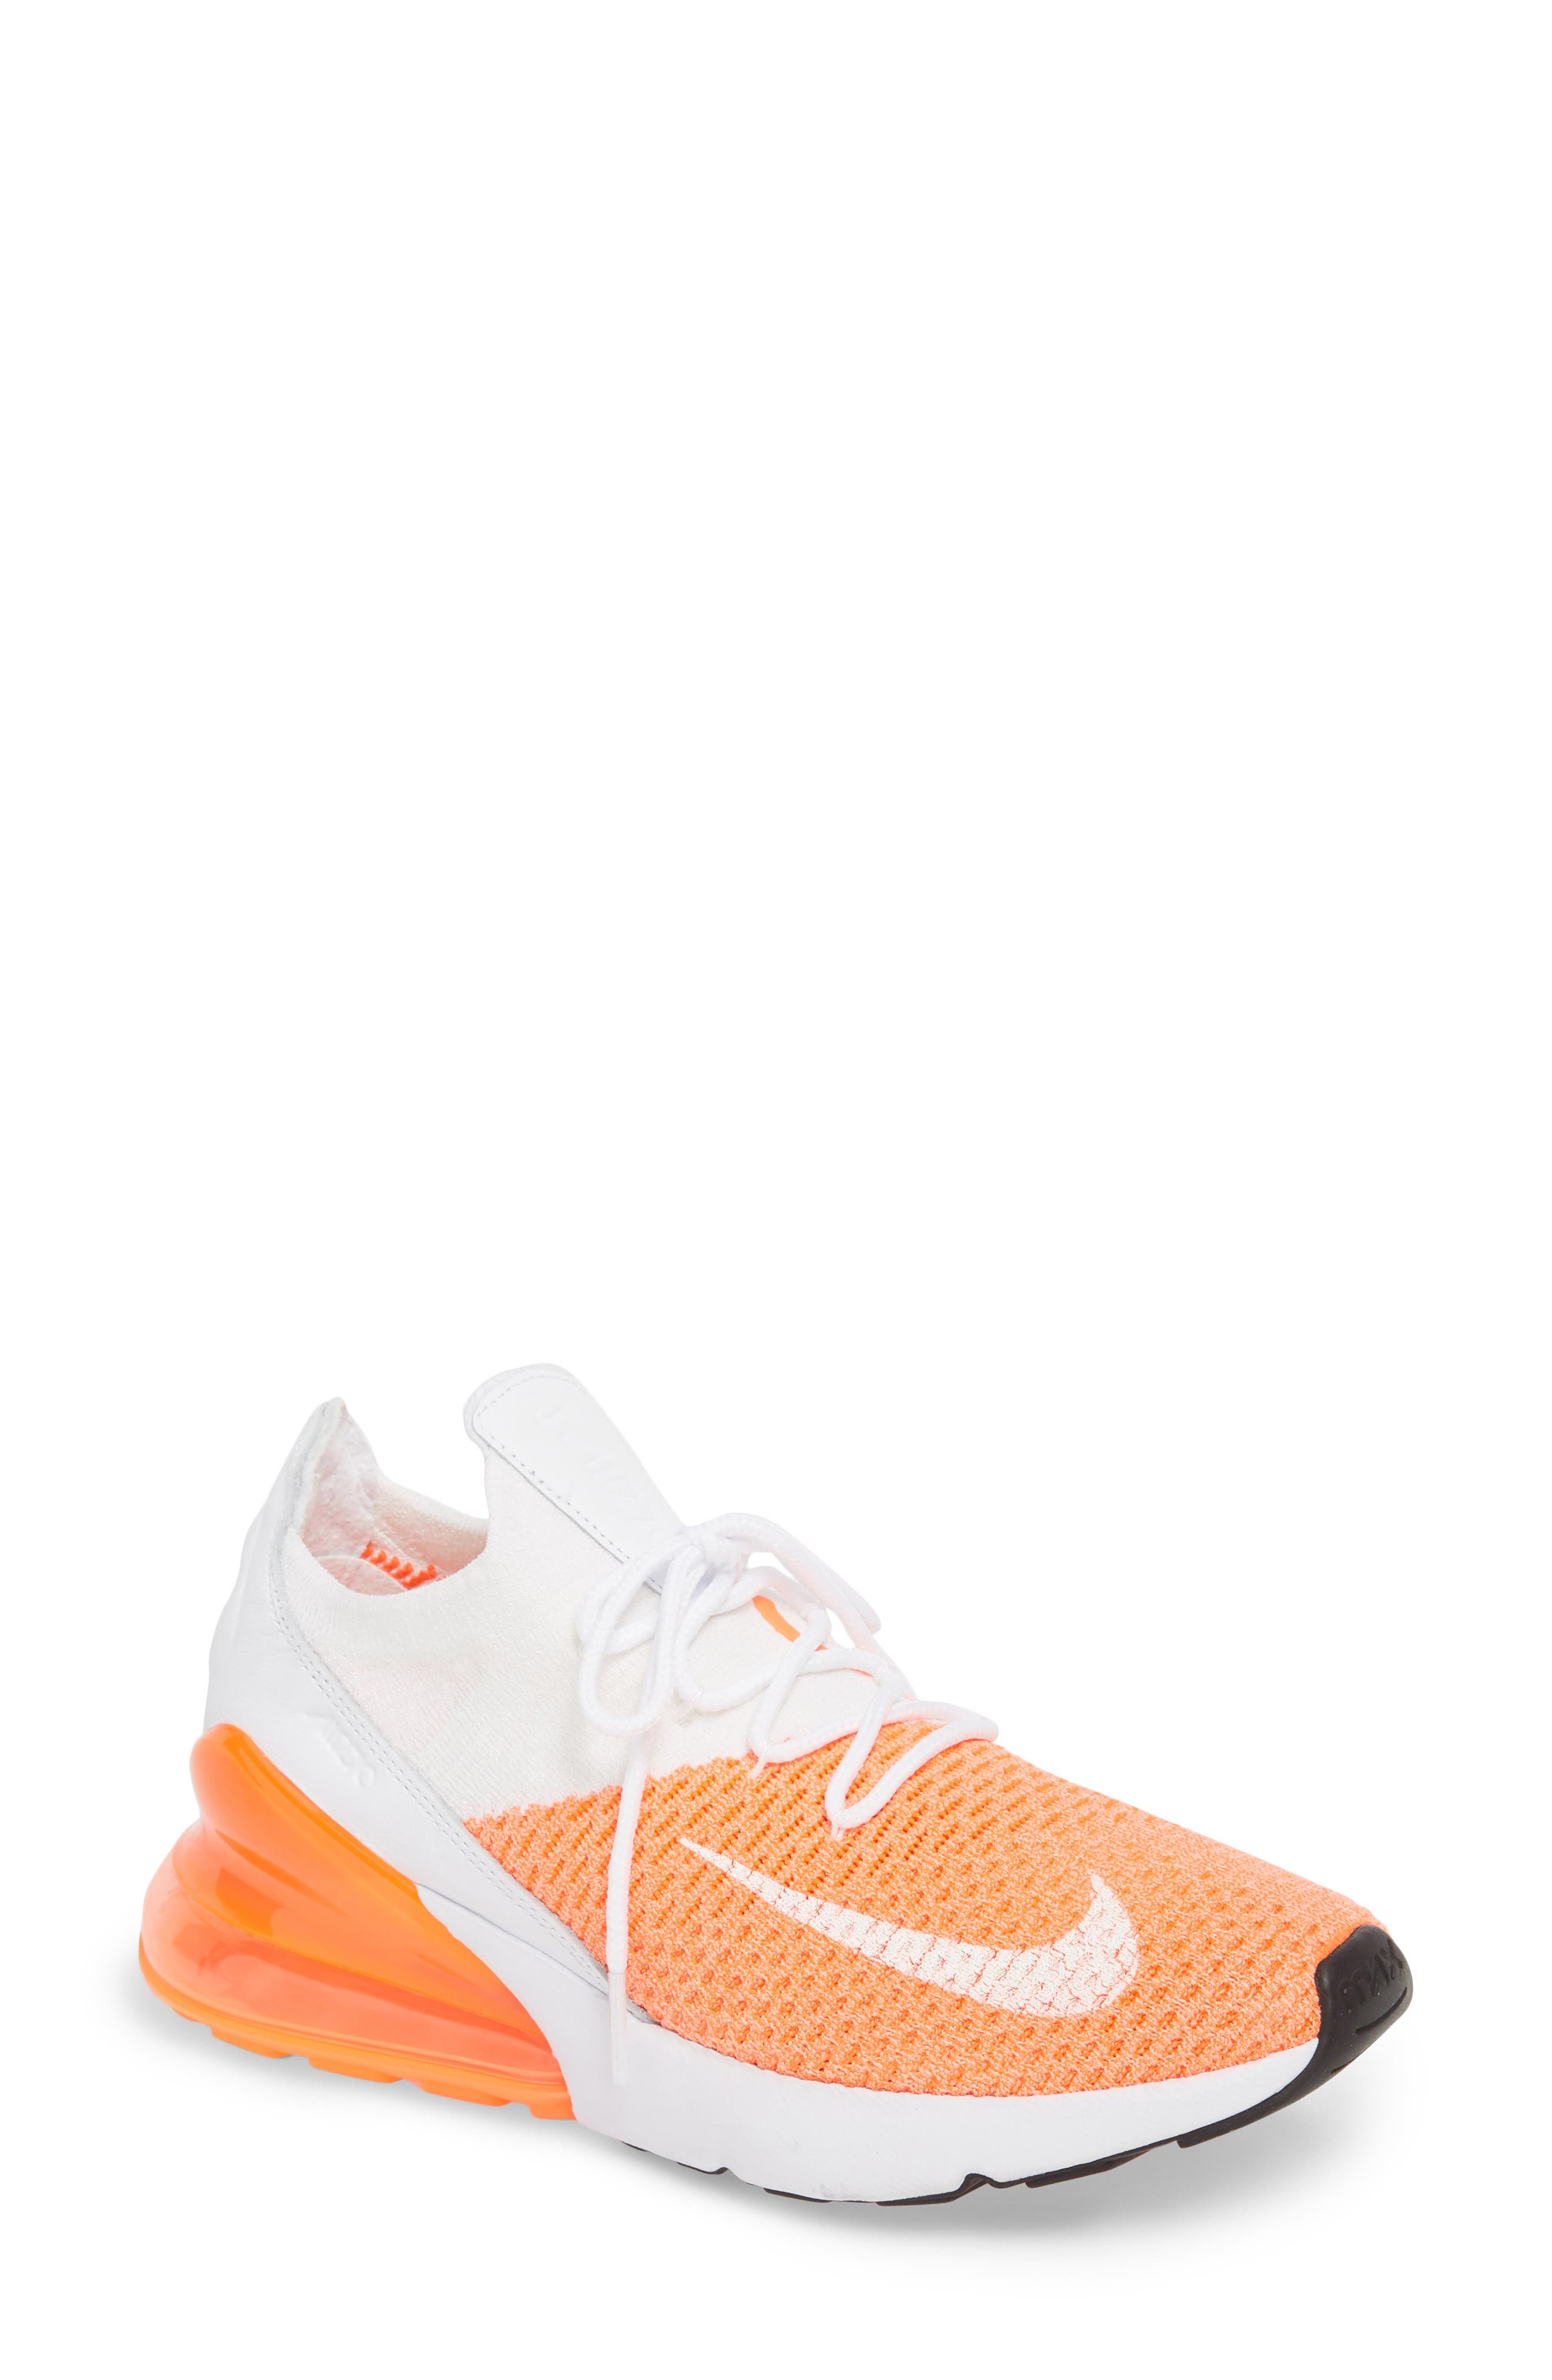 Air Max 270 Flyknit Sneaker,                             Main thumbnail 1, color,                             Crimson Pulse/ White